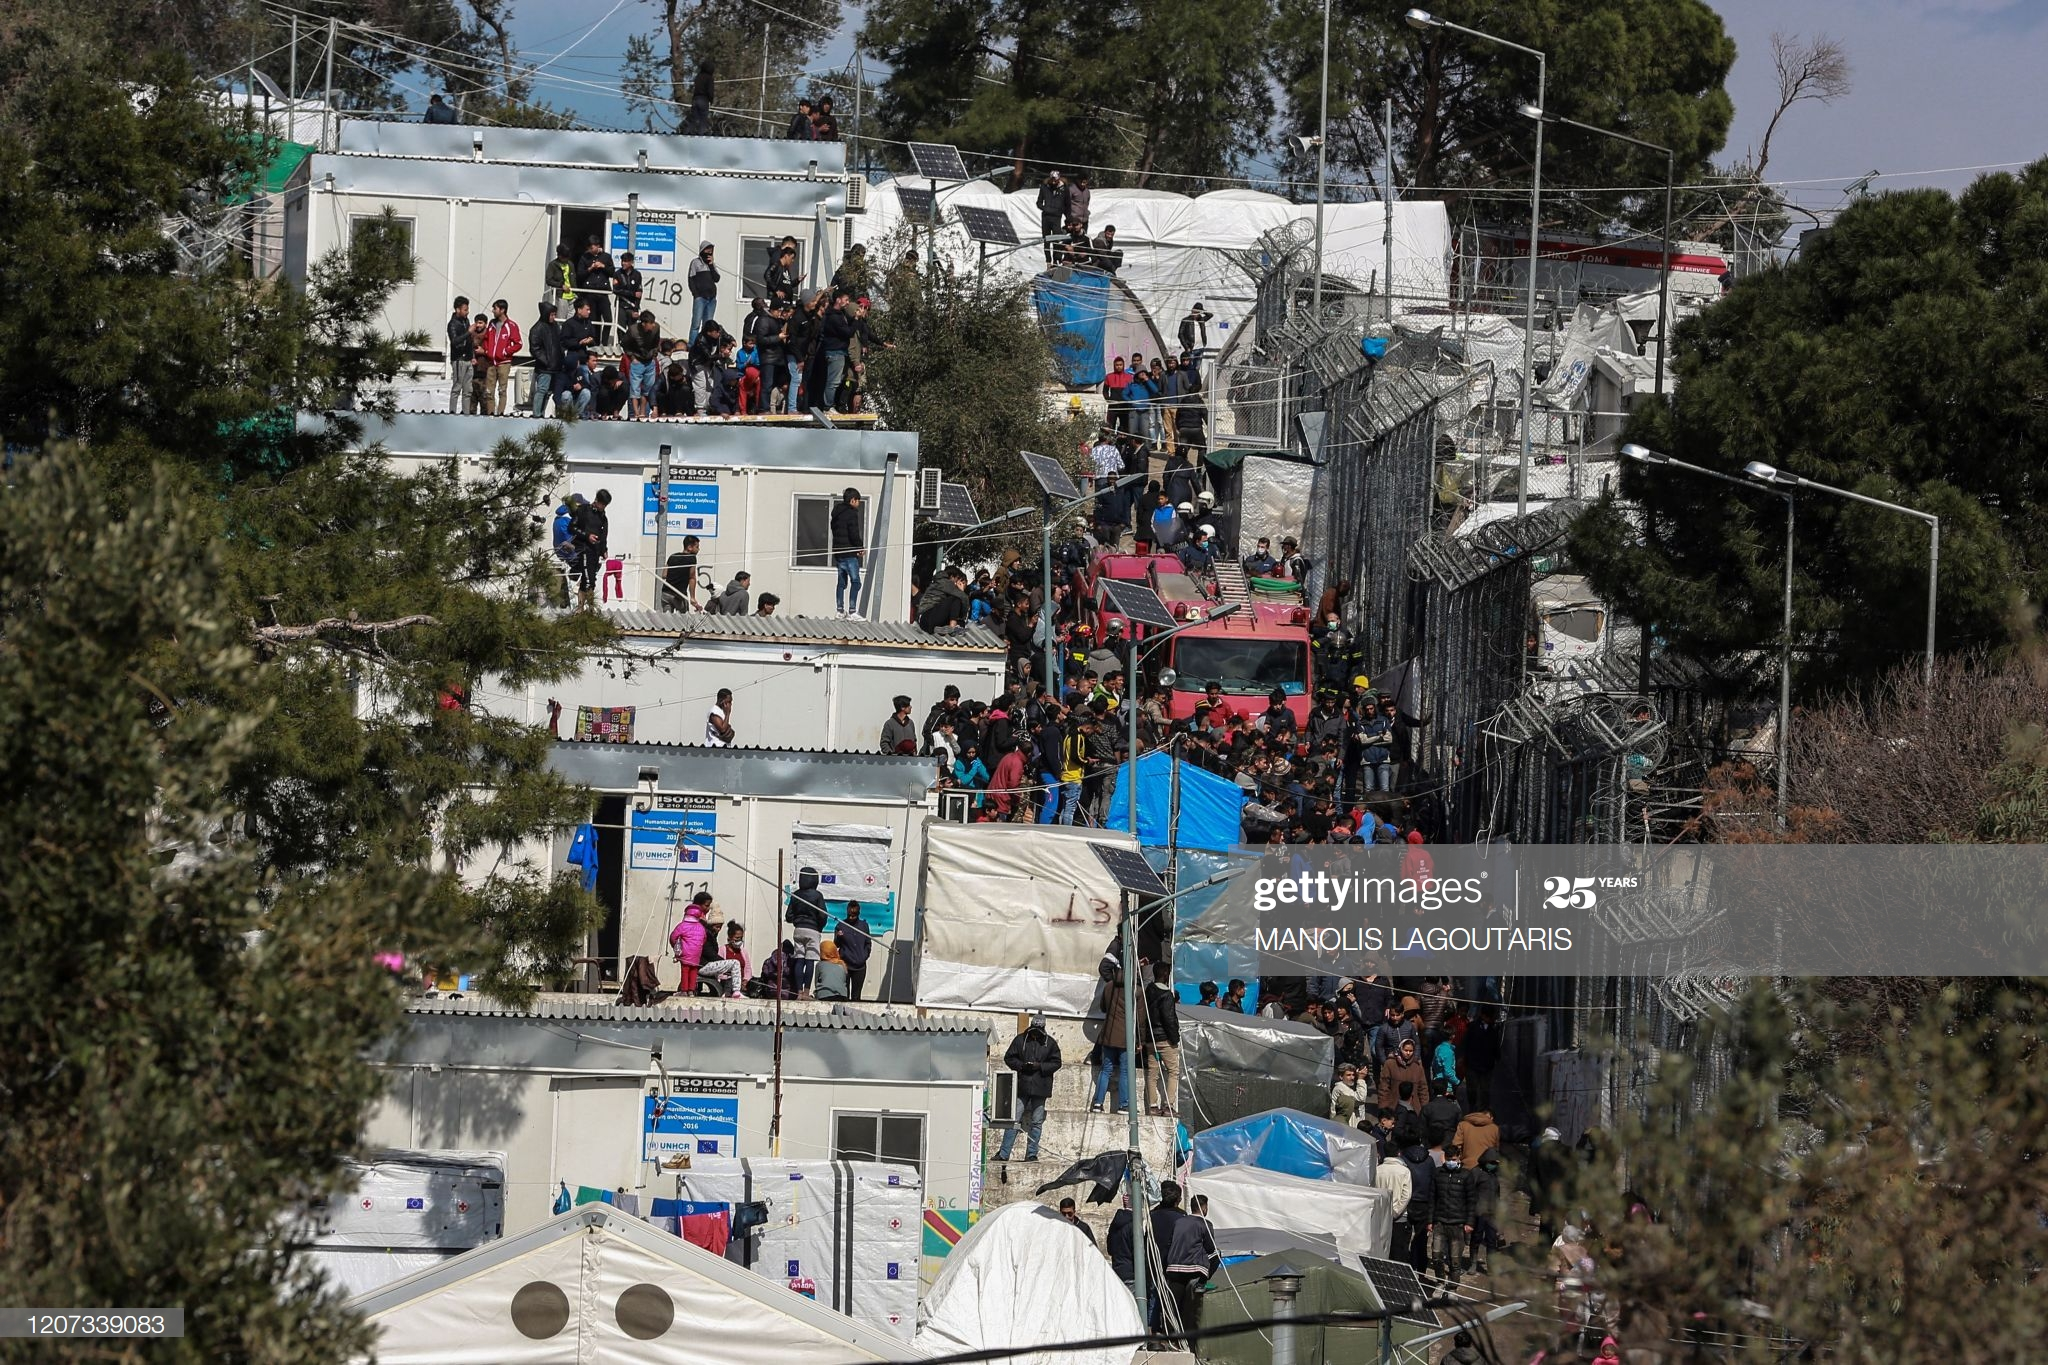 Greece: Move Asylum Seekers, Migrants to Safety Immediate Hotspot Decongestion Needed to Address COVID-19